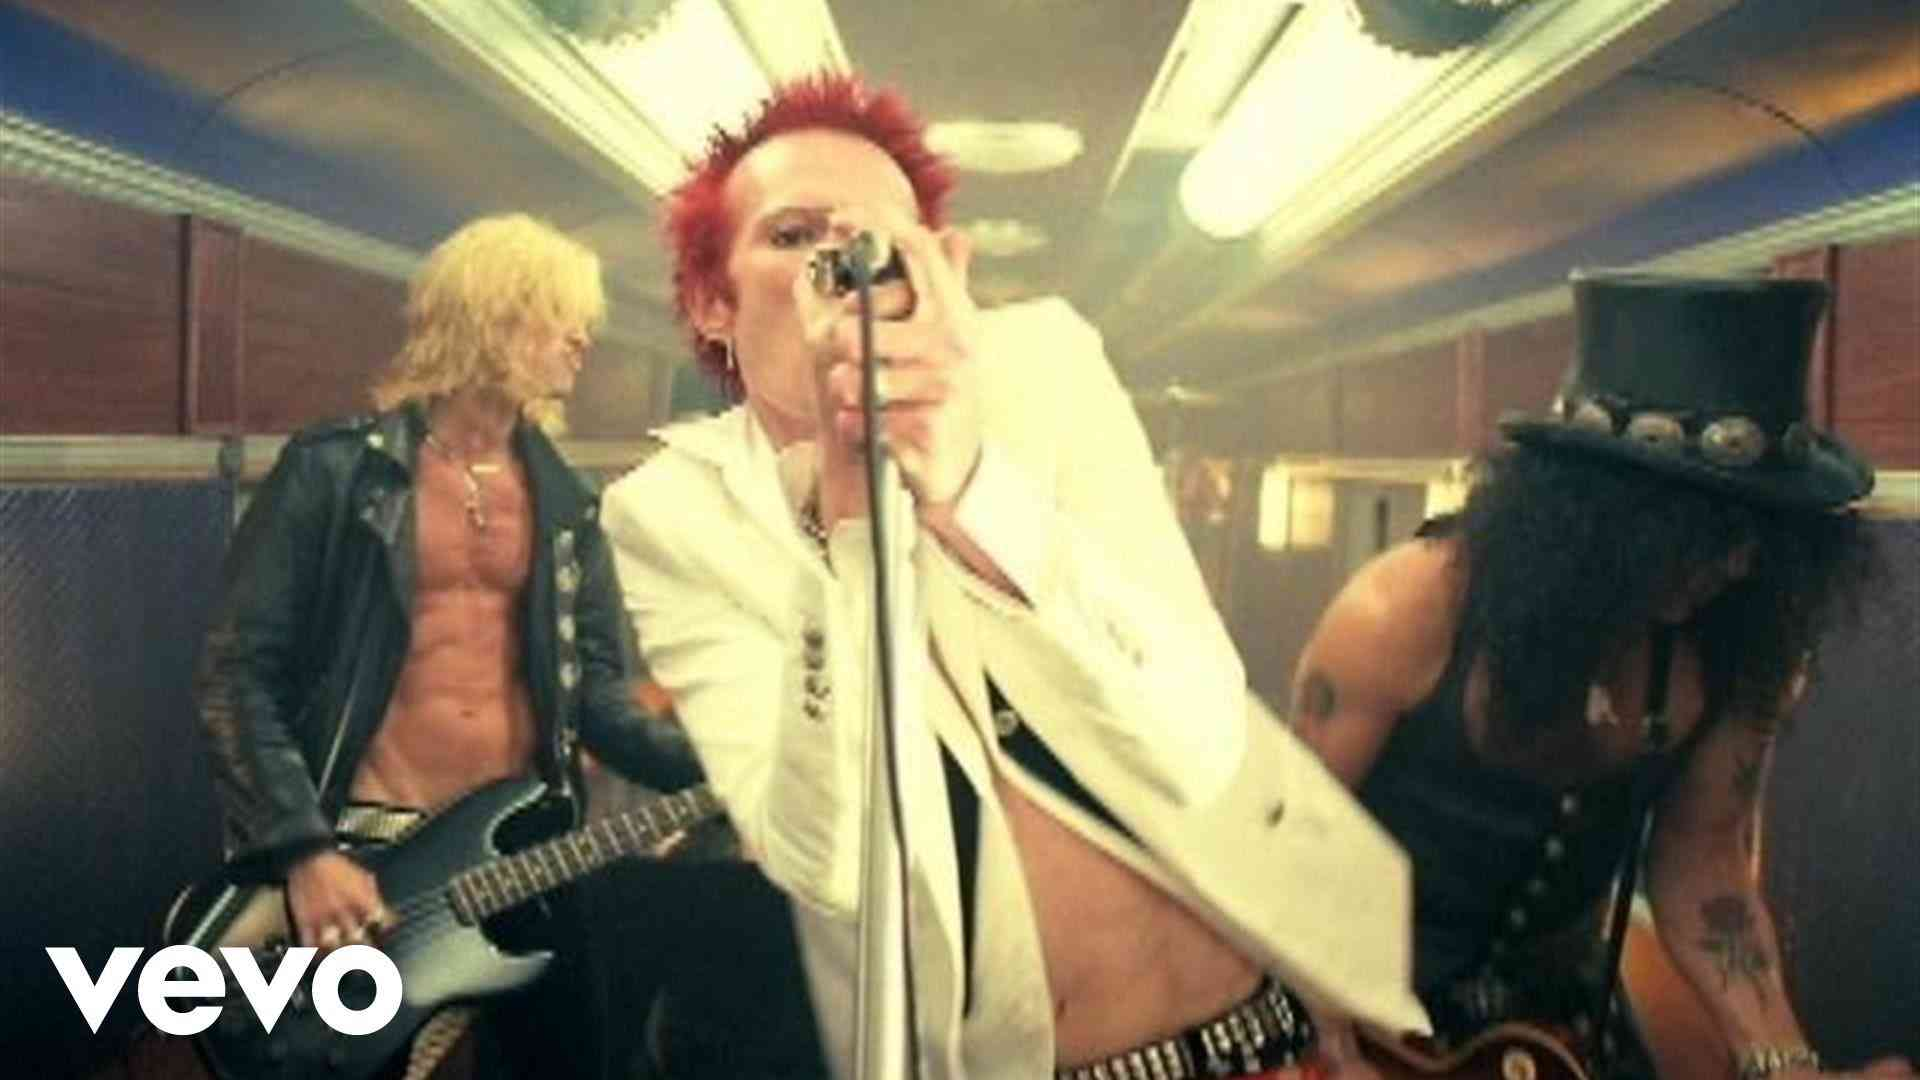 Velvet Revolver - Dirty Little Thing - YouTube